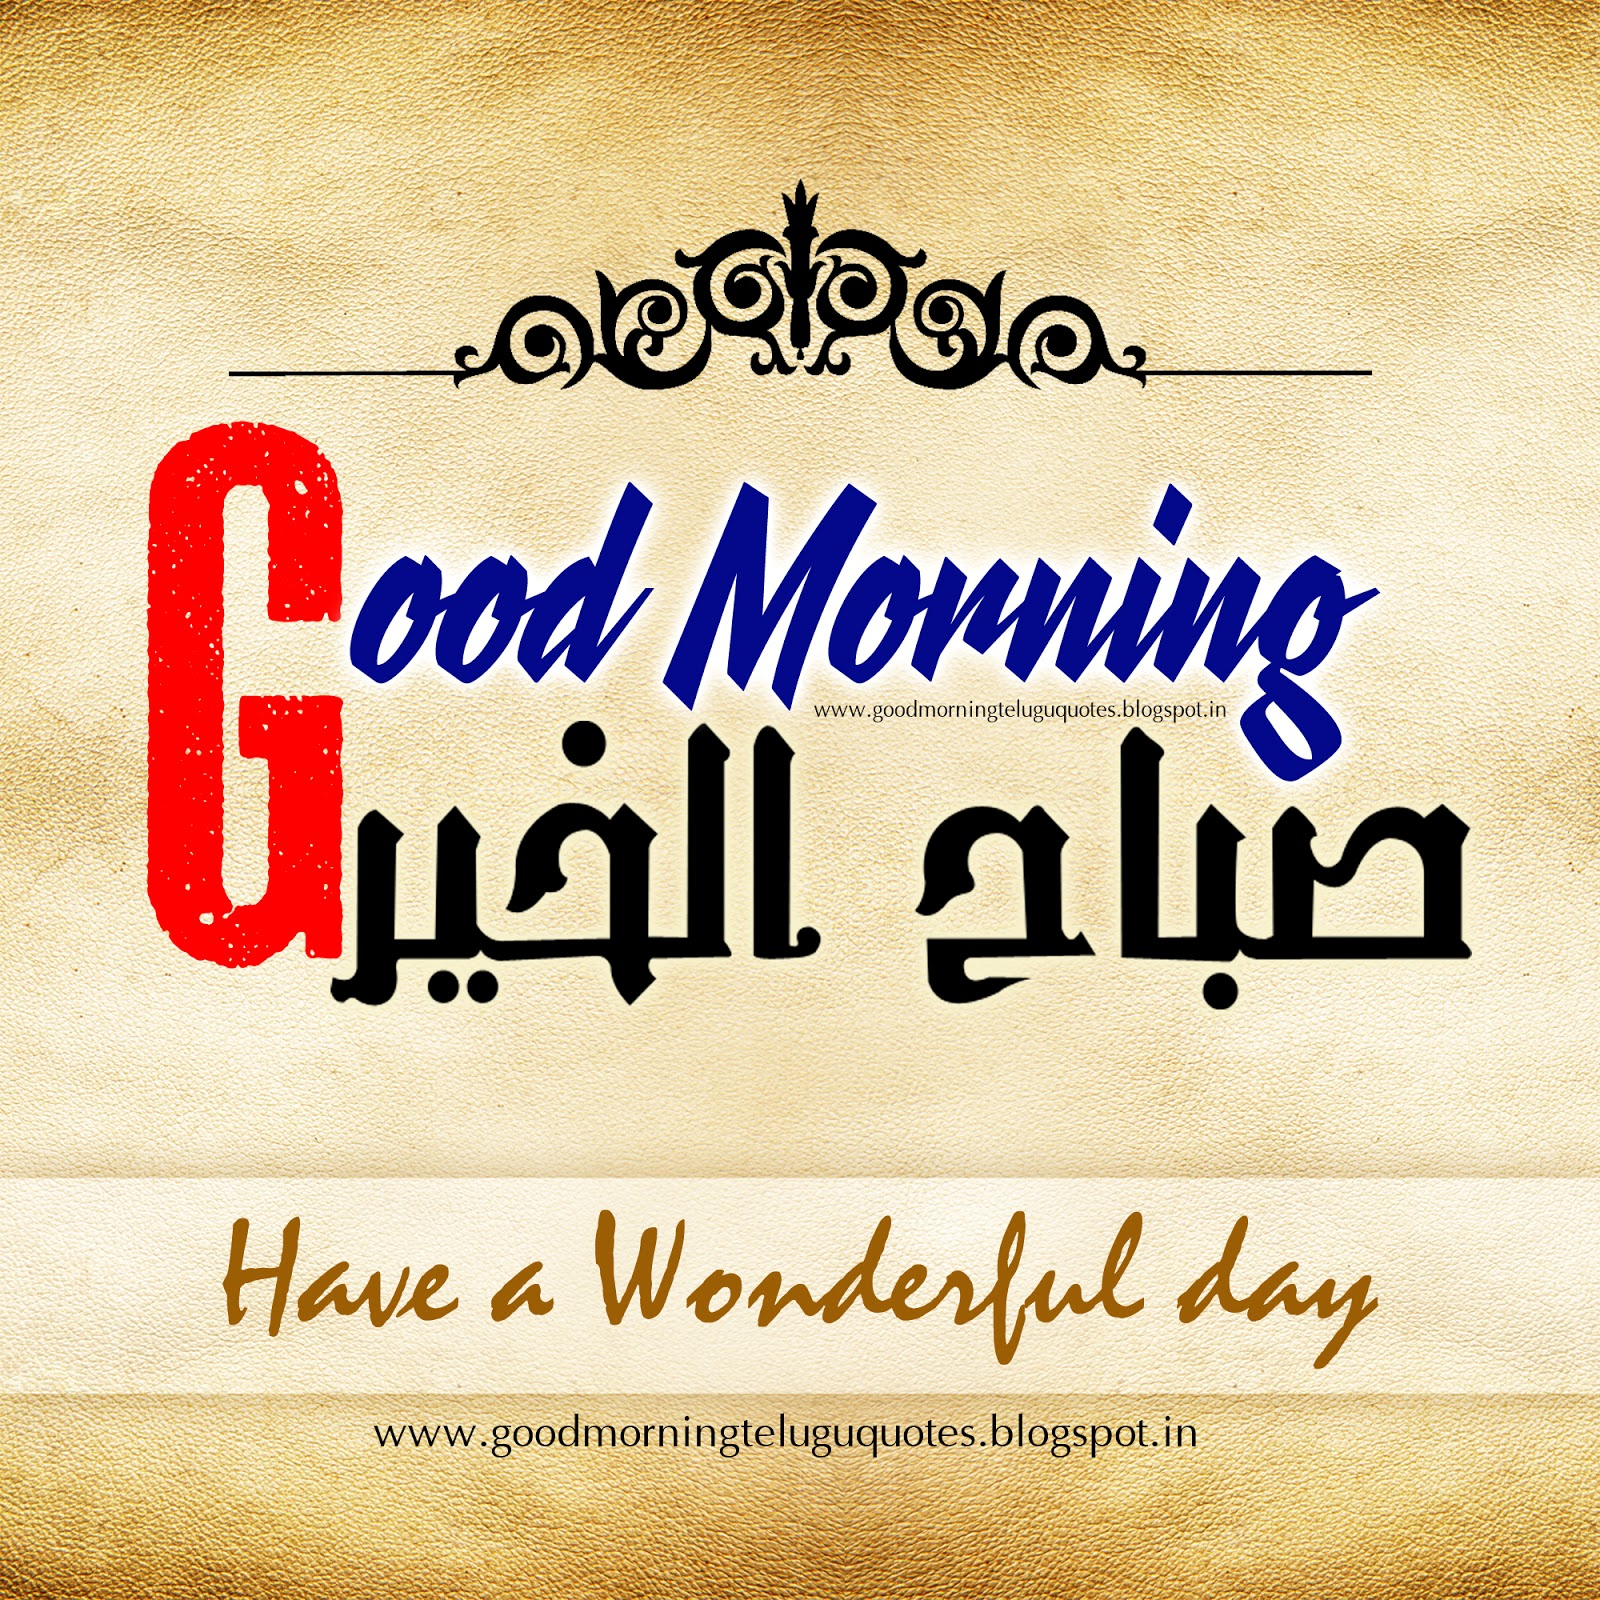 Good Morning Everyone In Arabic : Good morning pictures in arabic impremedia